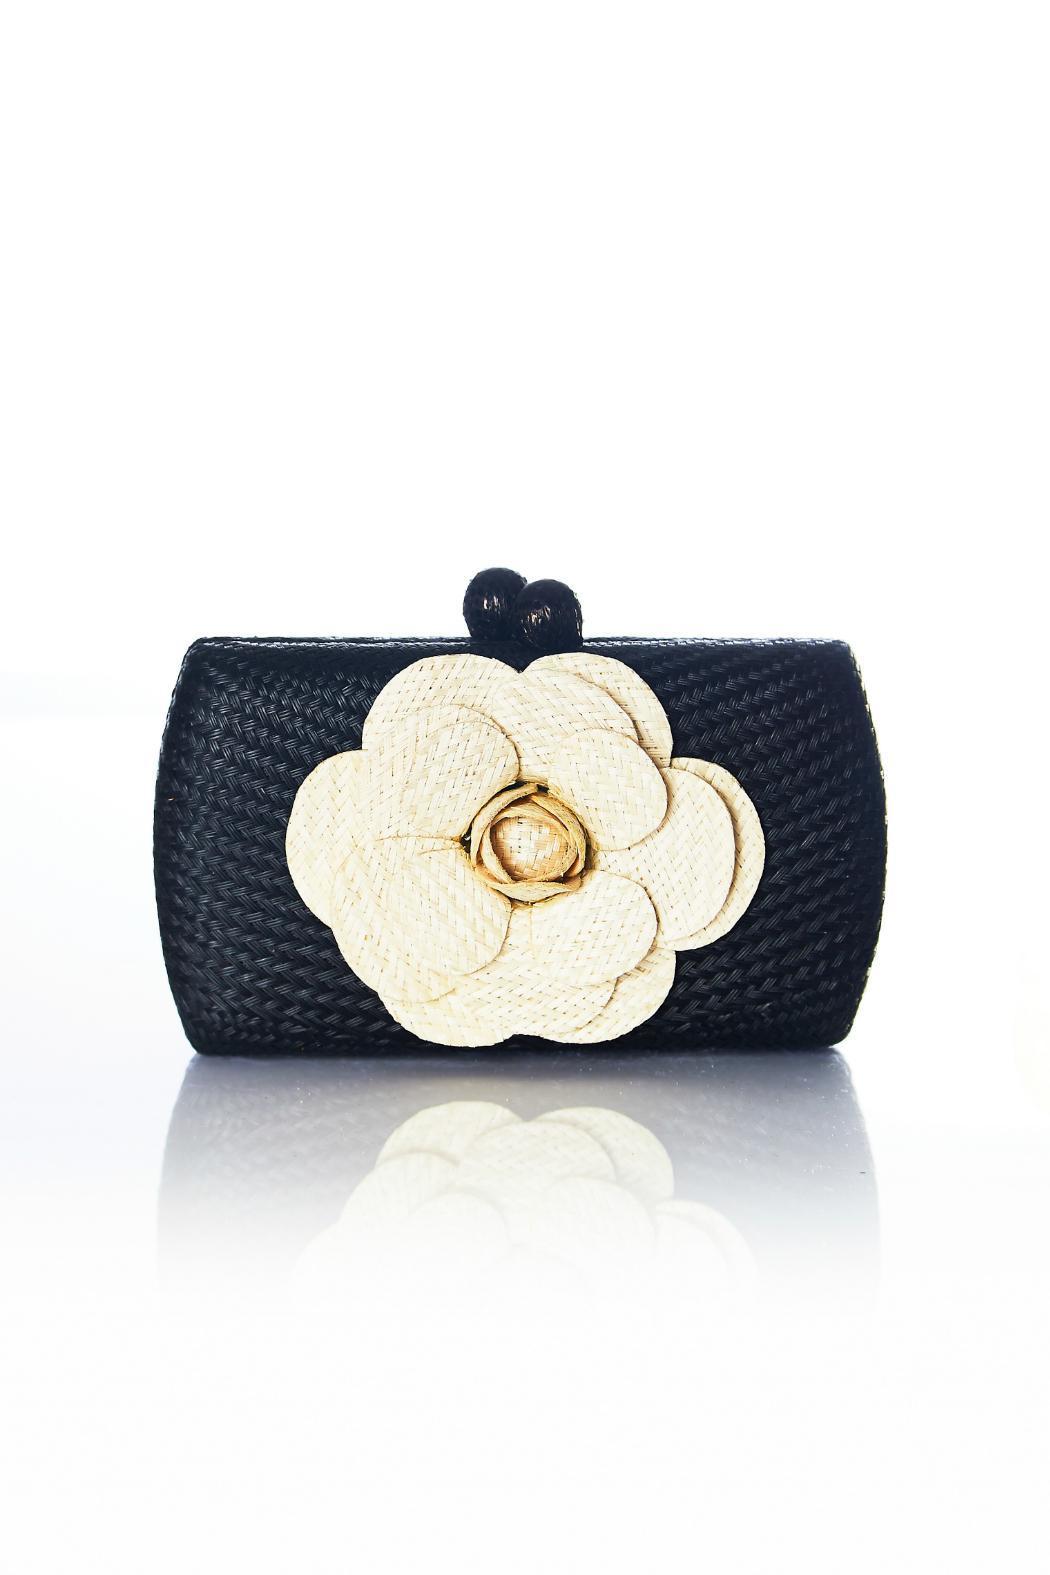 d19597625 Serpui Marie Camelia Bun Clutch from New Hampshire by Stiletto Shoes ...